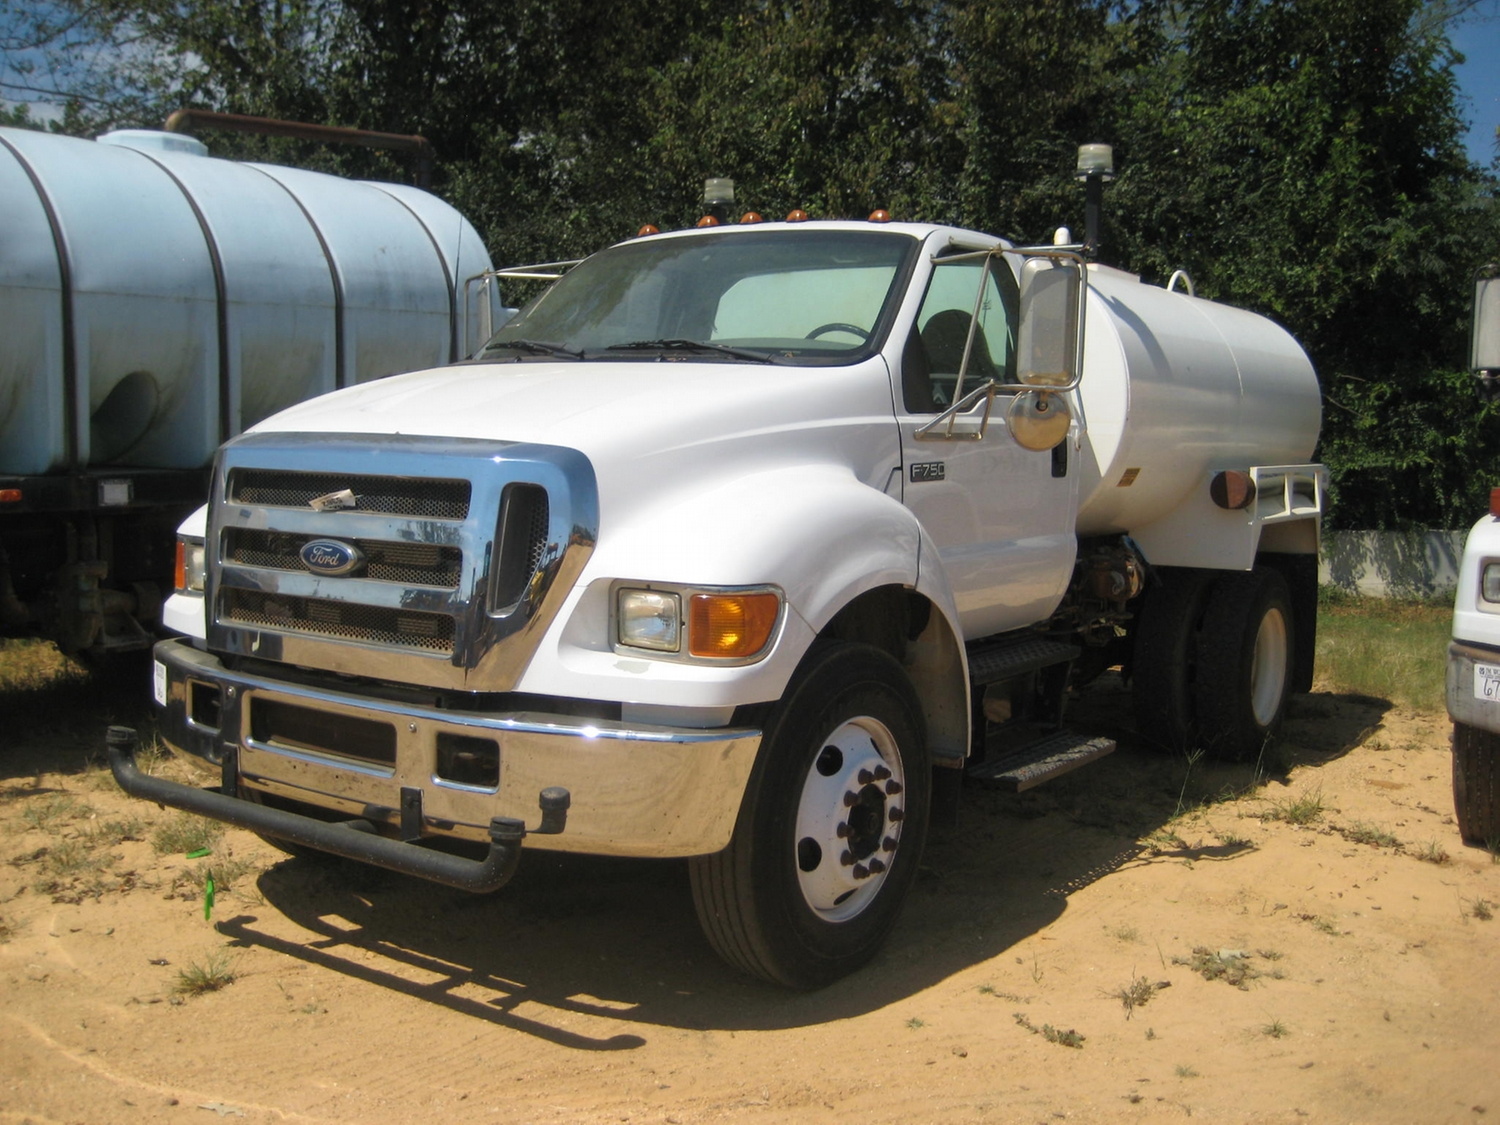 hight resolution of image 1 2005 ford f750 super duty s a water truck